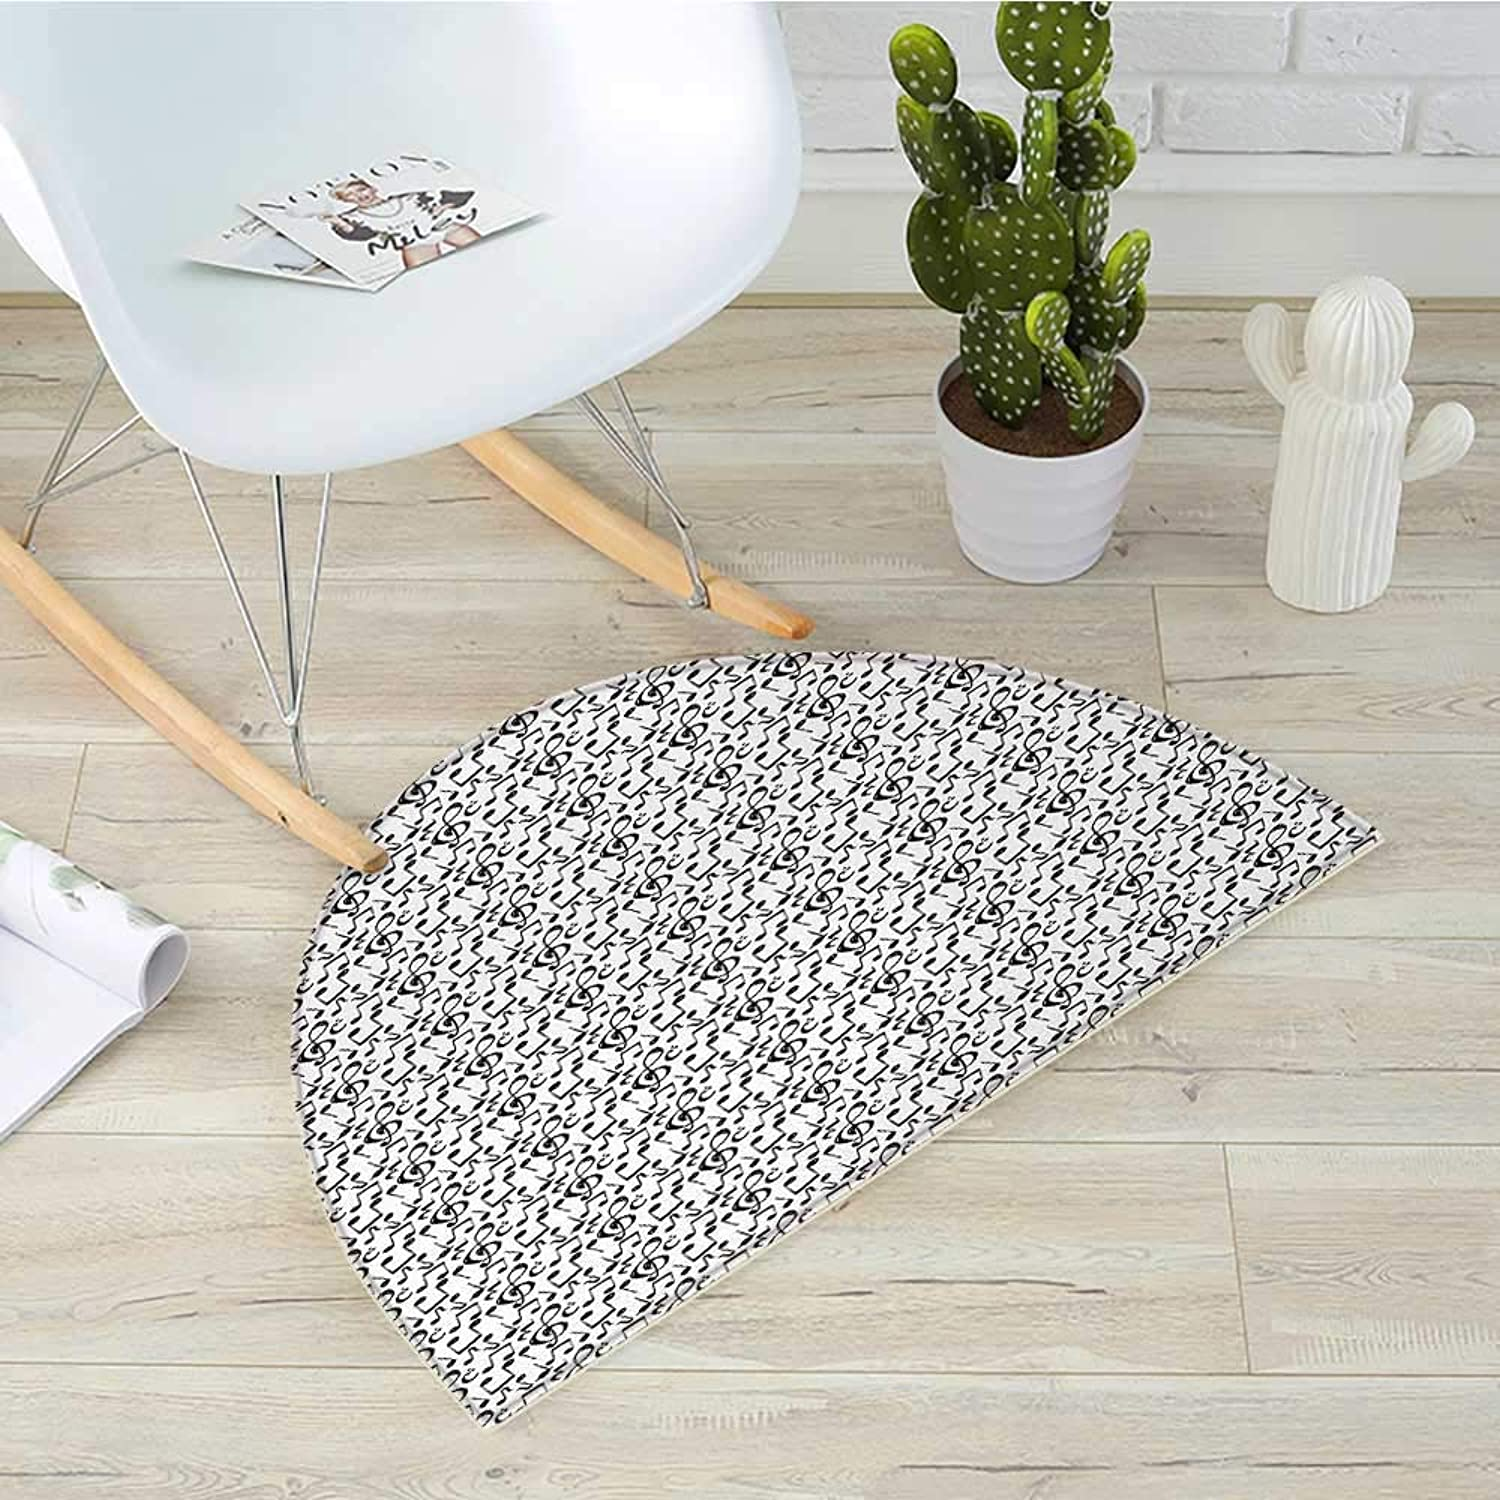 Music Semicircular CushionSketchy Musical Notes and Symbols Melody Entertainment Fine Arts Theme Pattern Entry Door Mat H 31.5  xD 47.2  Black and White